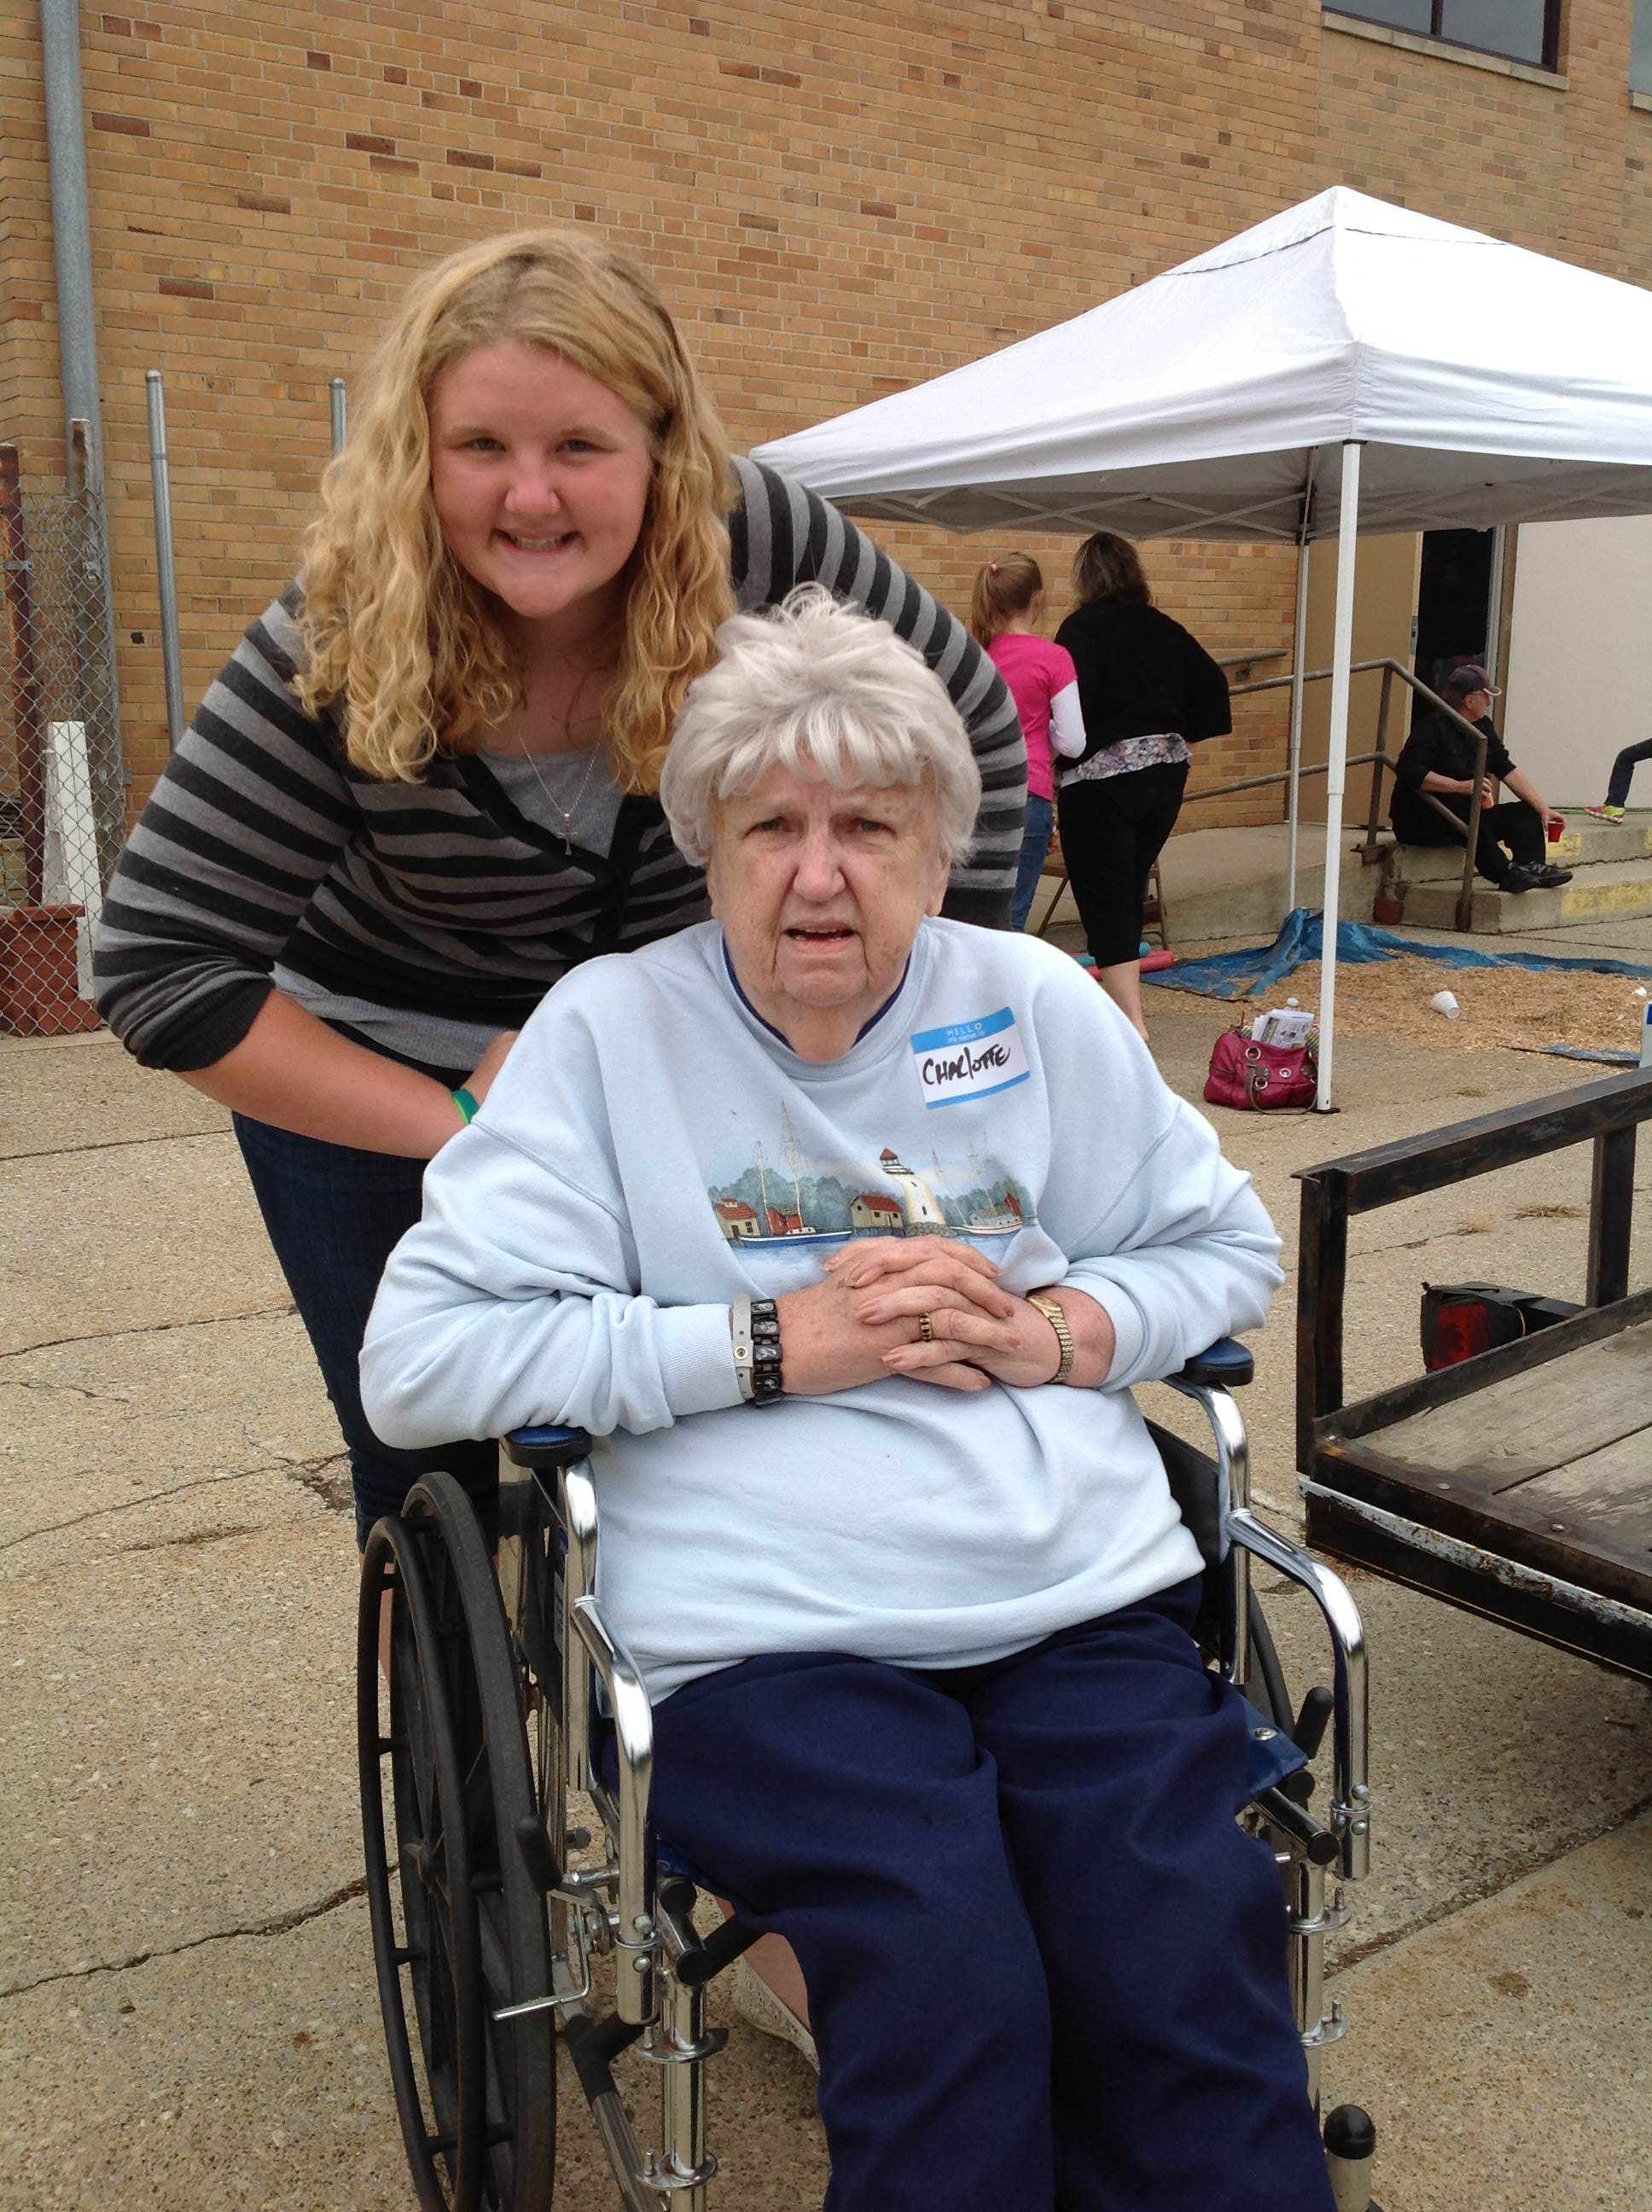 Renae Kempf and Grandmother